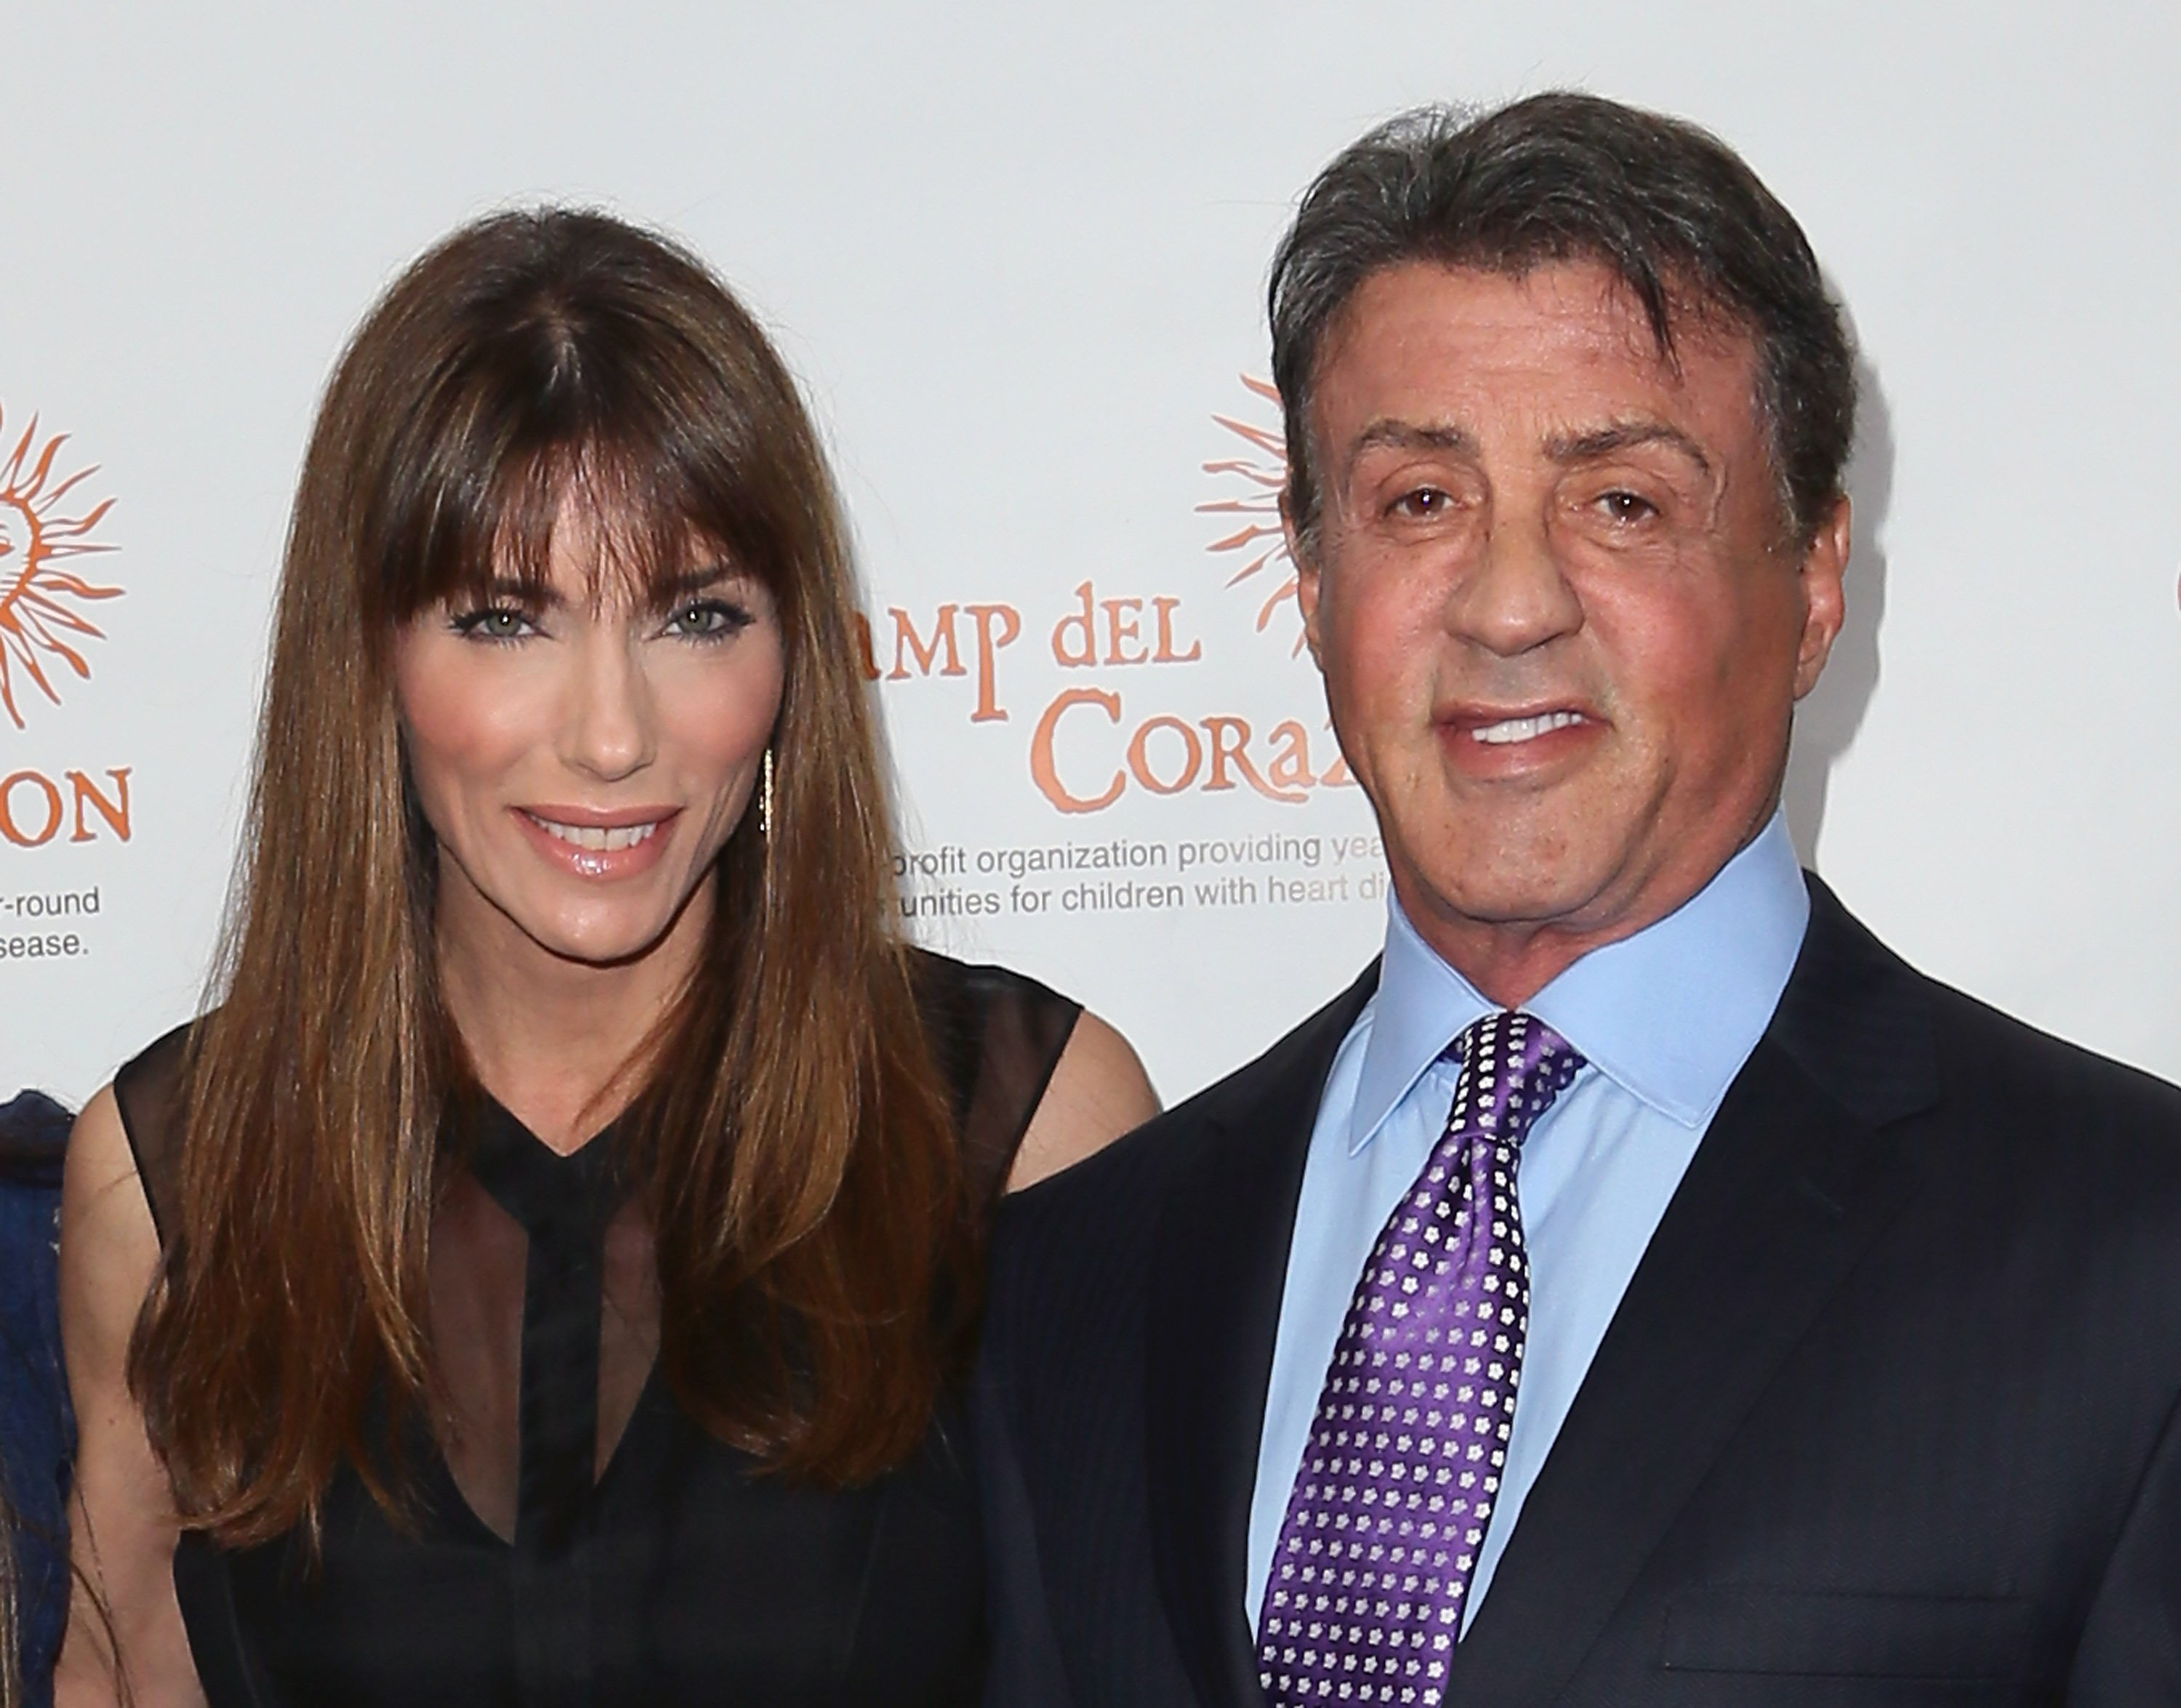 Image Credits: Getty Images / David Livingston | Actor Sylvester Stallone (R) and wife Jennifer Flavin attend Camp del Corazon's 11th Annual Gala del Sol at the Ray Dolby Ballroom at Hollywood & Highland Center on April 19, 2014 in Hollywood, California.